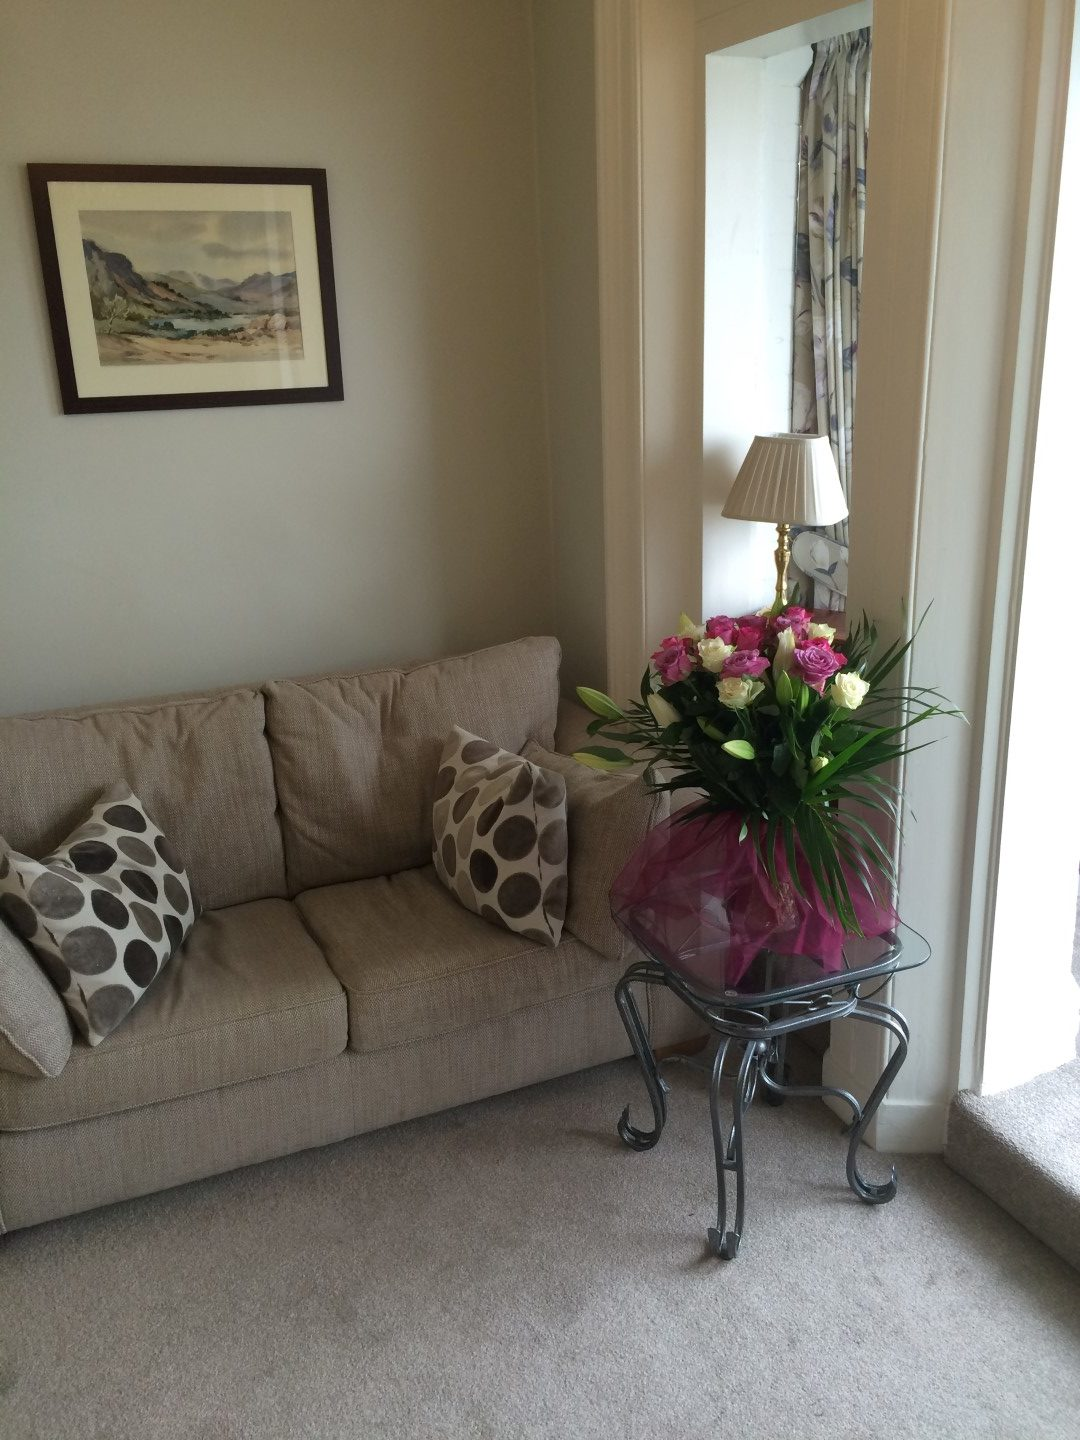 Wedding photo at Gleneagles Guesthouse with flowers